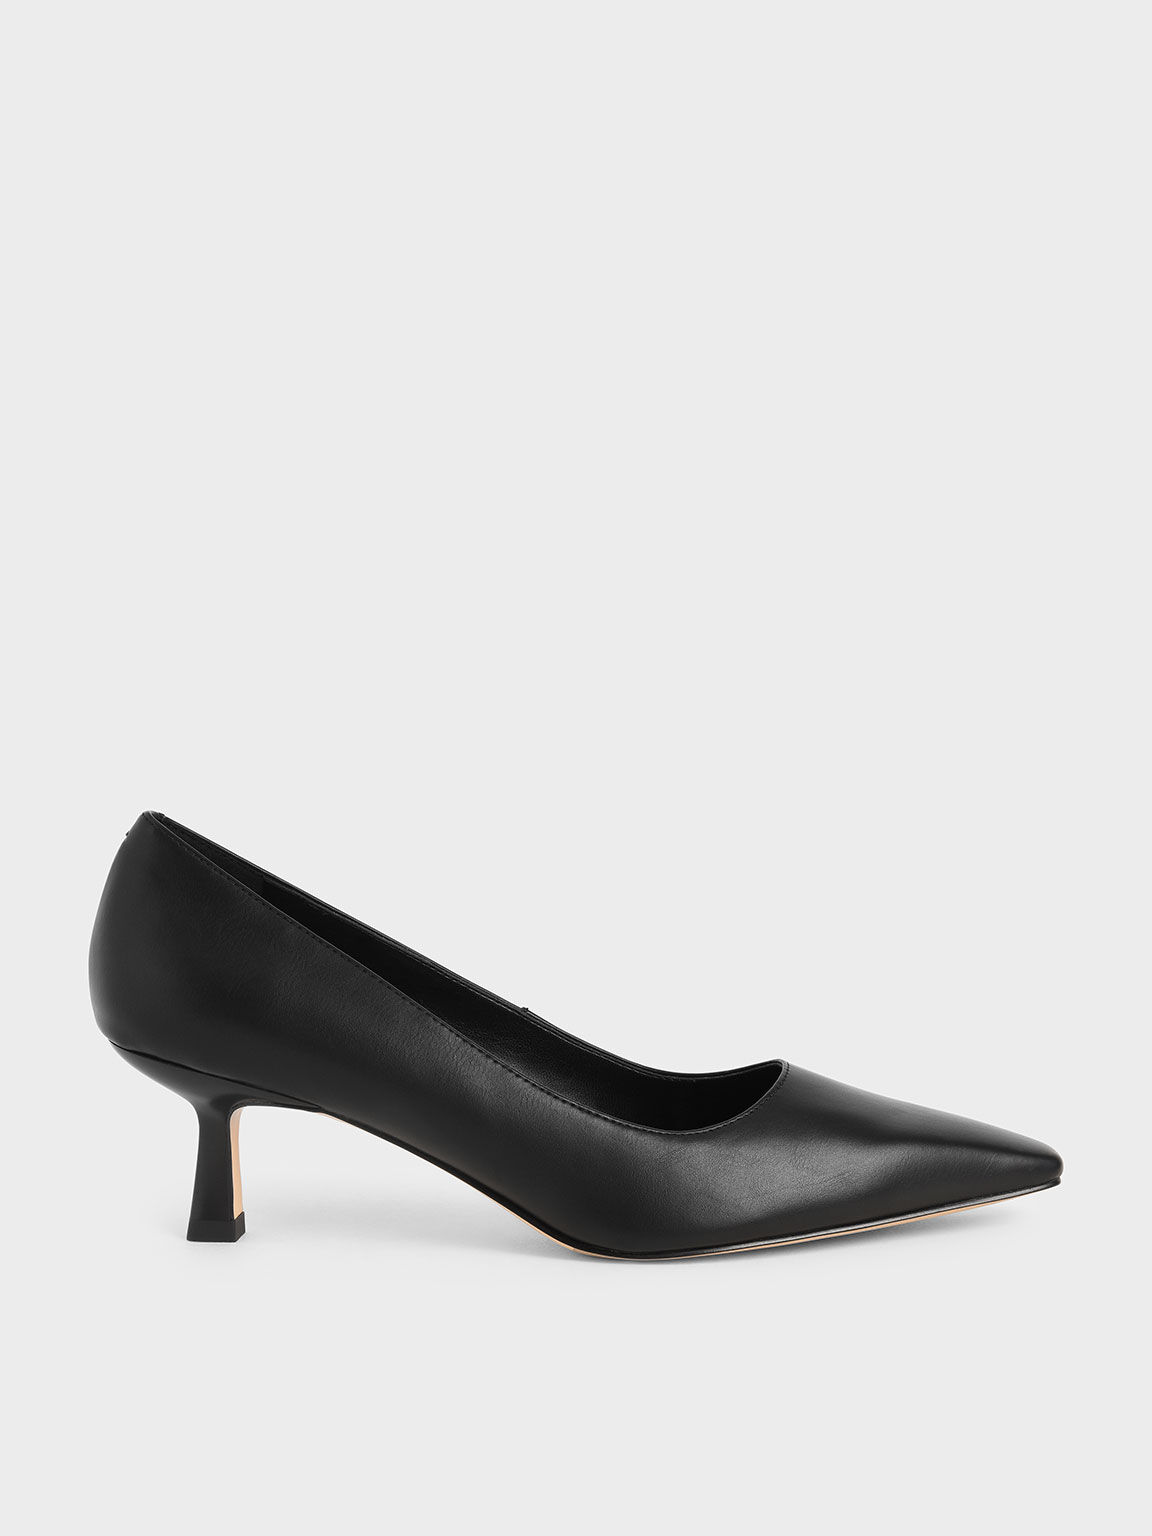 Kitten Heel Court Shoes, Black, hi-res